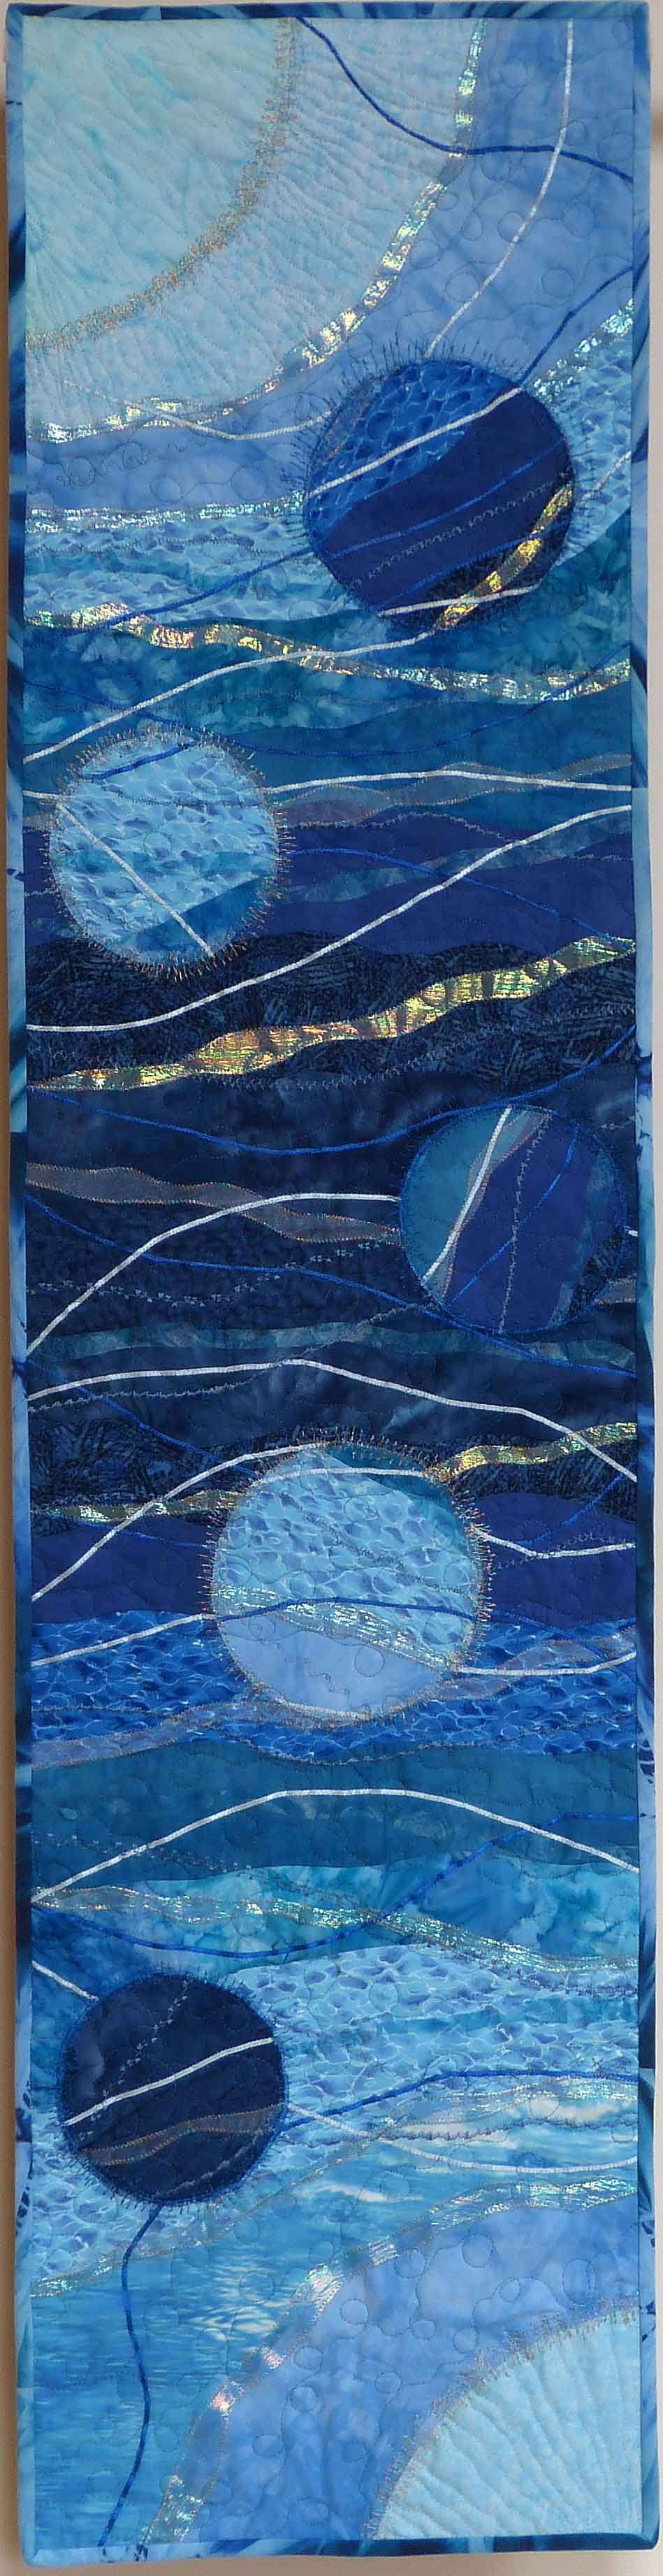 Blue Moon by Alison Drayson